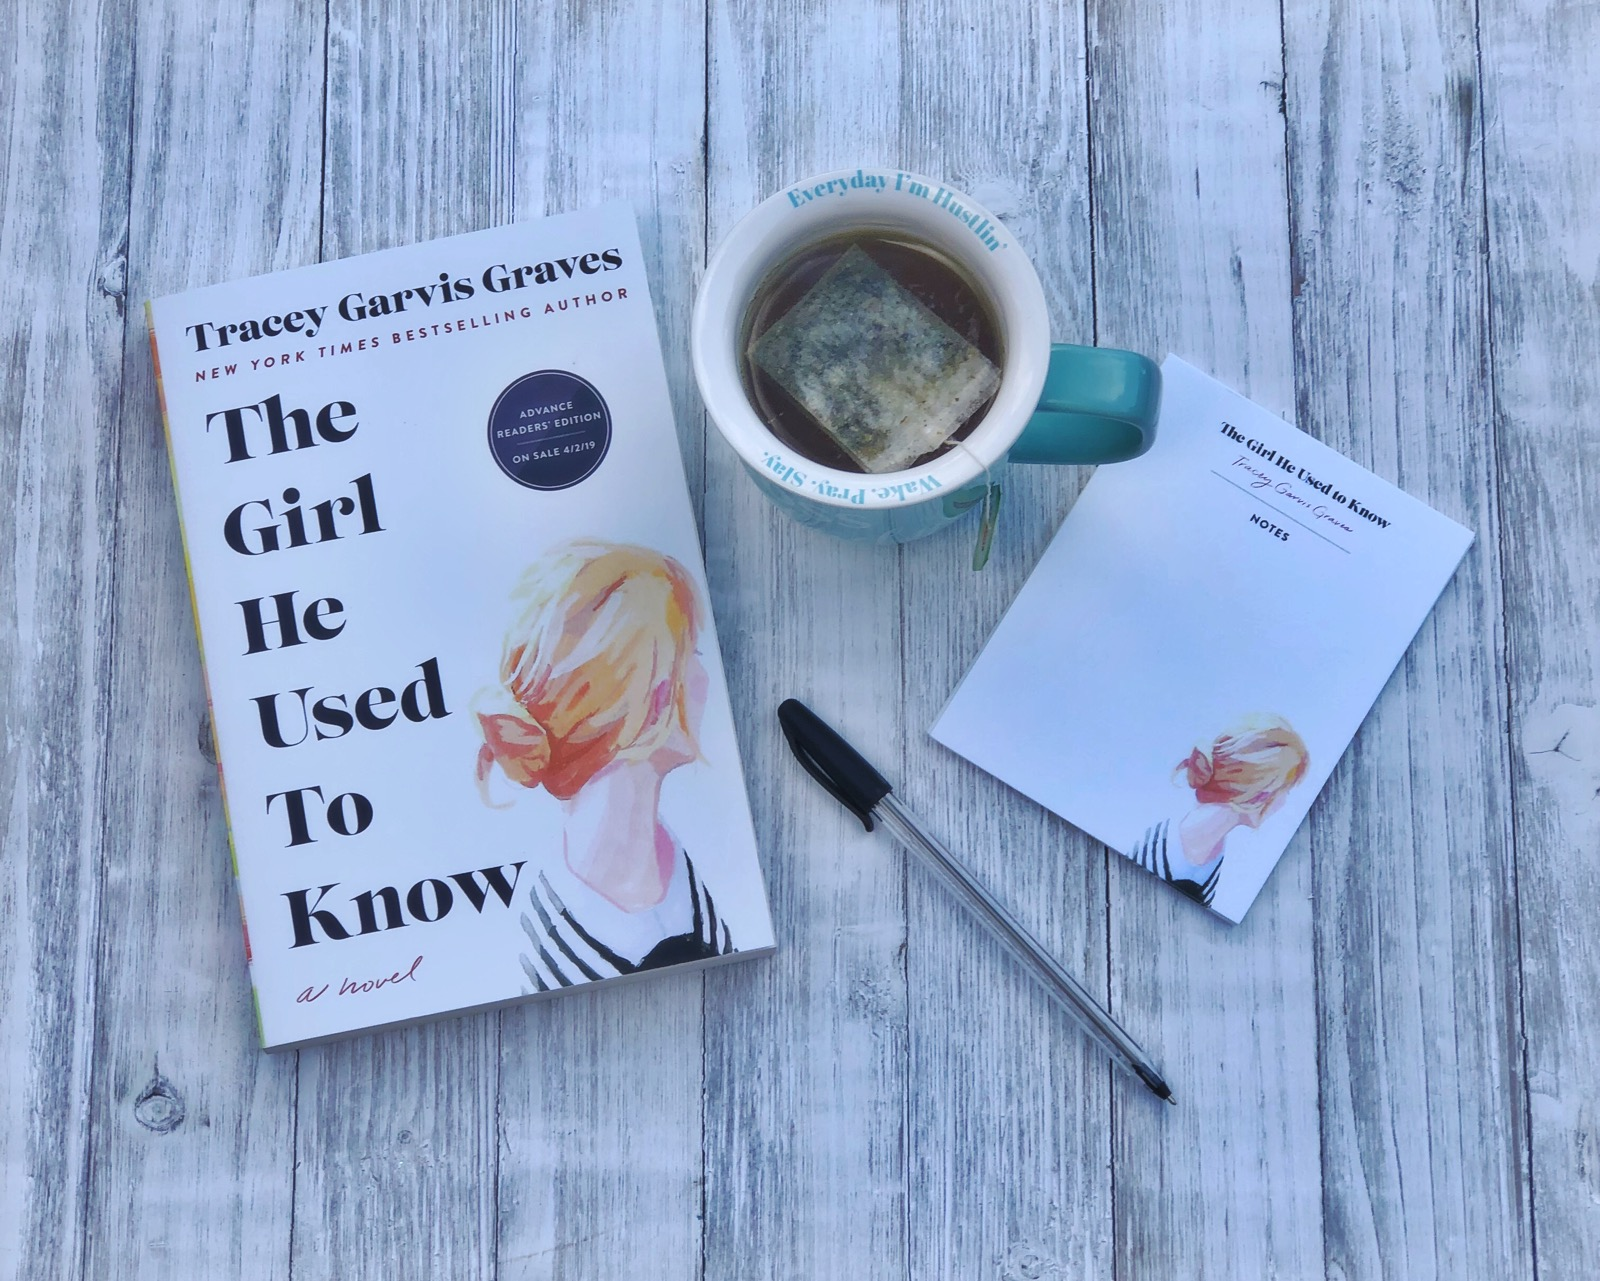 The Girl He Used to Know by Tracy Garvis Graves Review. #TheGirlHeUsedtoKnow  #TracyGarvisGraves #BookReview #SheSpeaks #StMartinsPress #ReadTheGirl #Ad